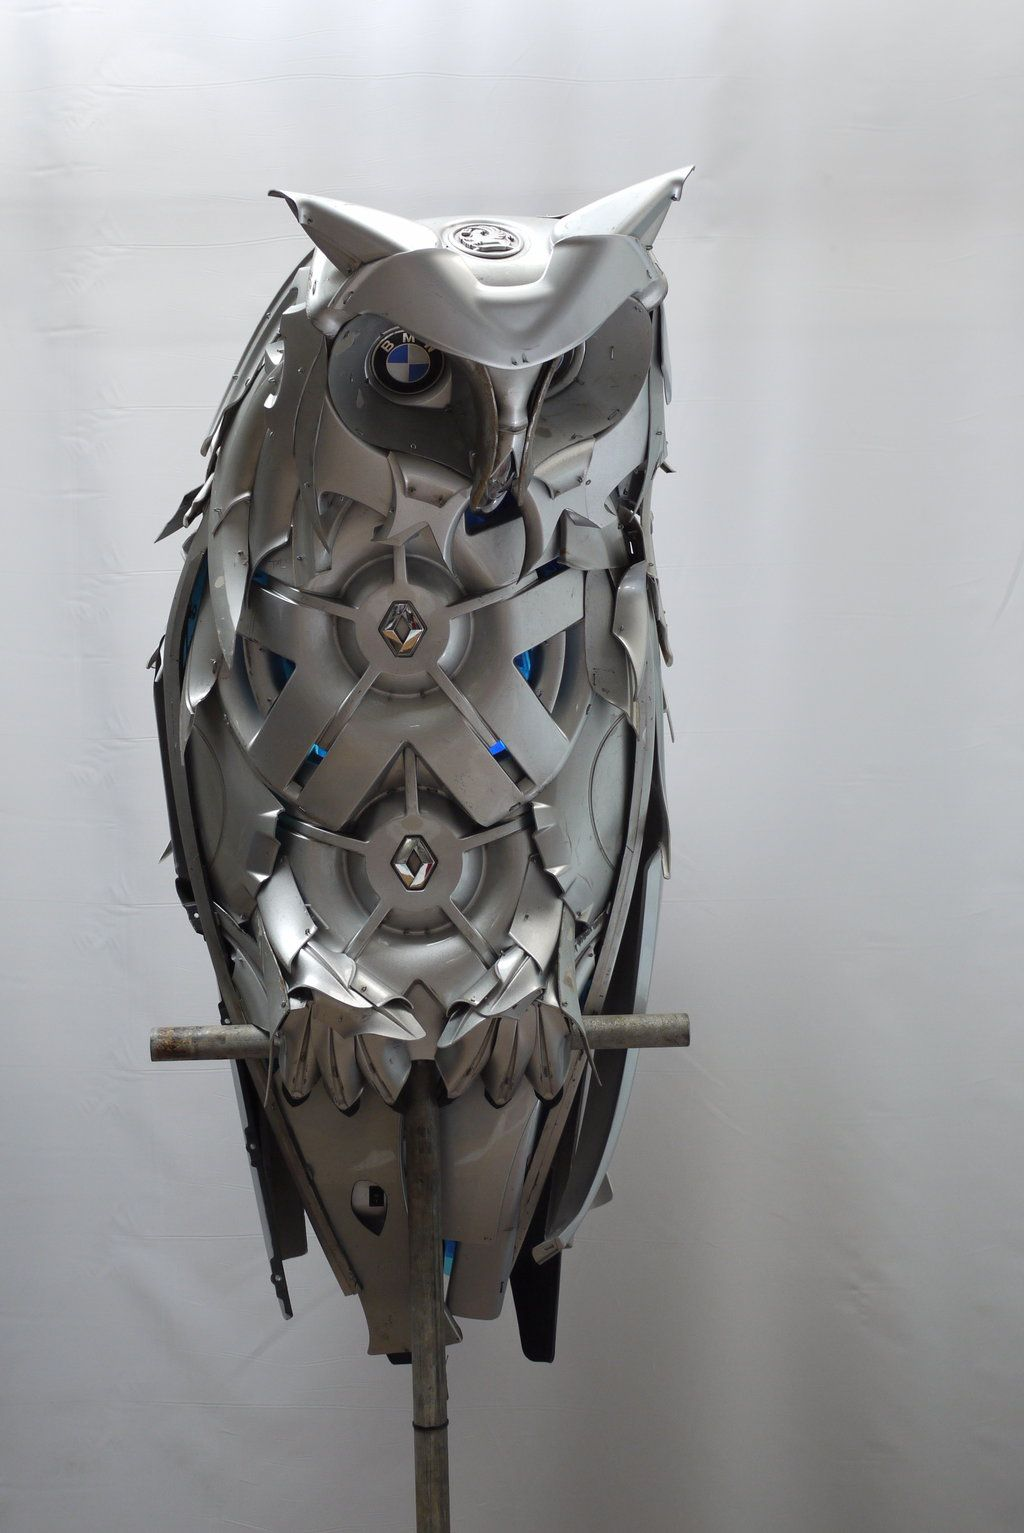 10 Mind-Blowing Sculptures Made From Old Wheel Hubcaps | Pinterest ...